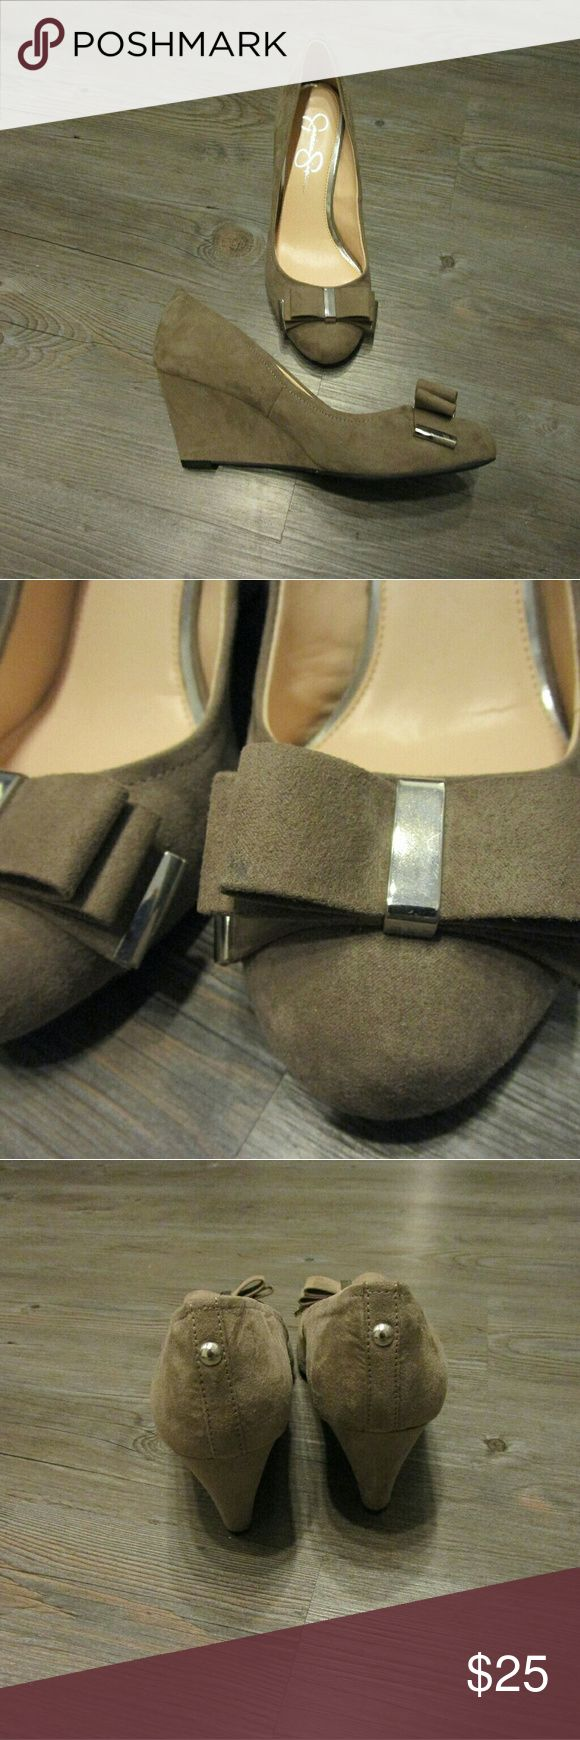 """Jessica Simpson Taupe Suede Wedges Heels Jessica Simpson suede wedge heels in like new condition with the exception of a small dark mark on the bow in the front (as shown in the second picture). No signs of wear otherwise. 3"""" heel height. Jessica Simpson Shoes Heels"""